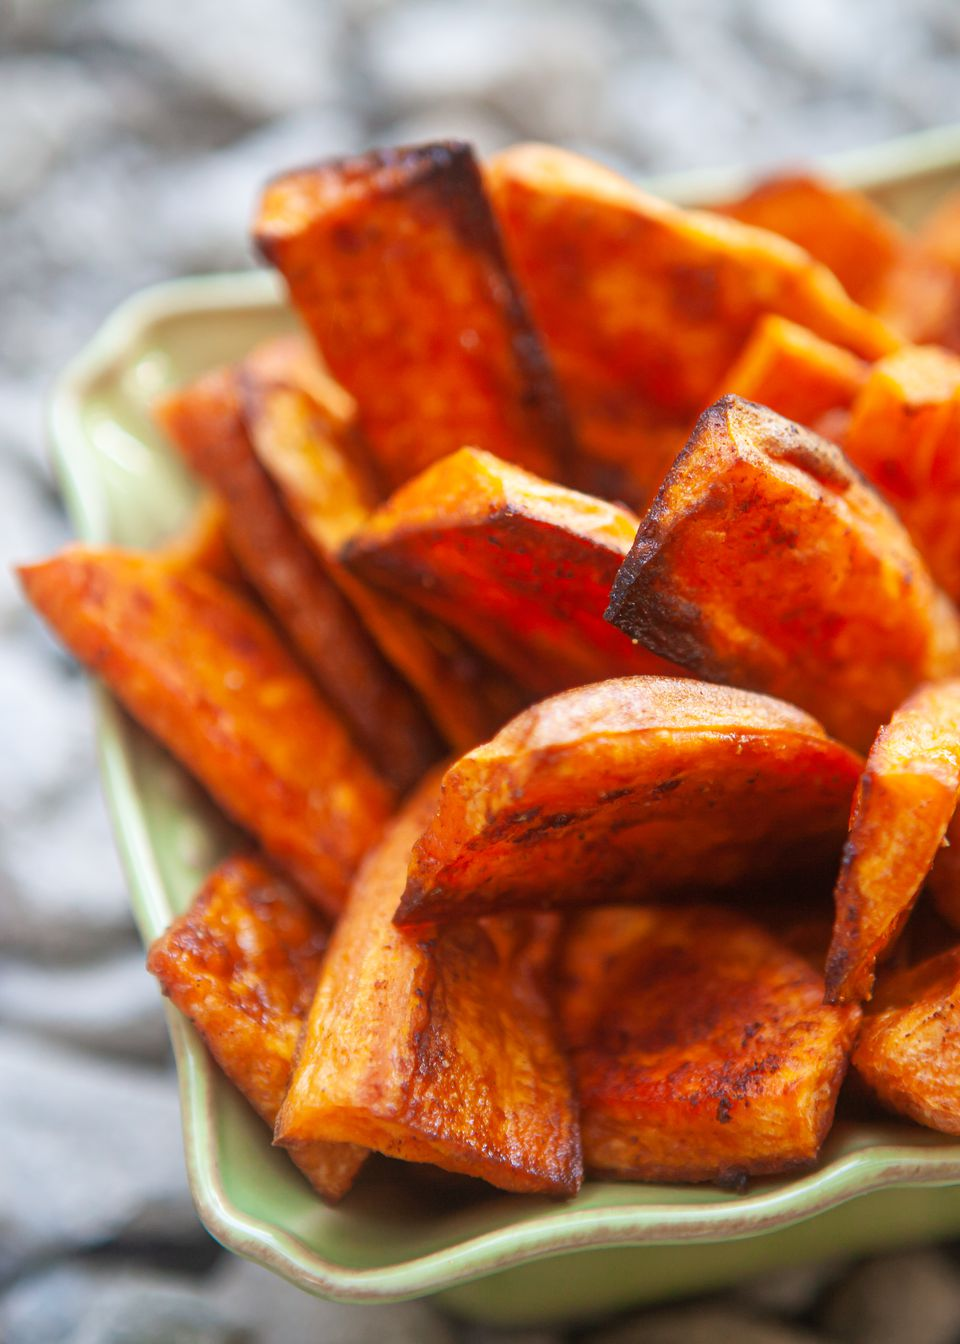 Baked sweet potato fries stacked in a container.